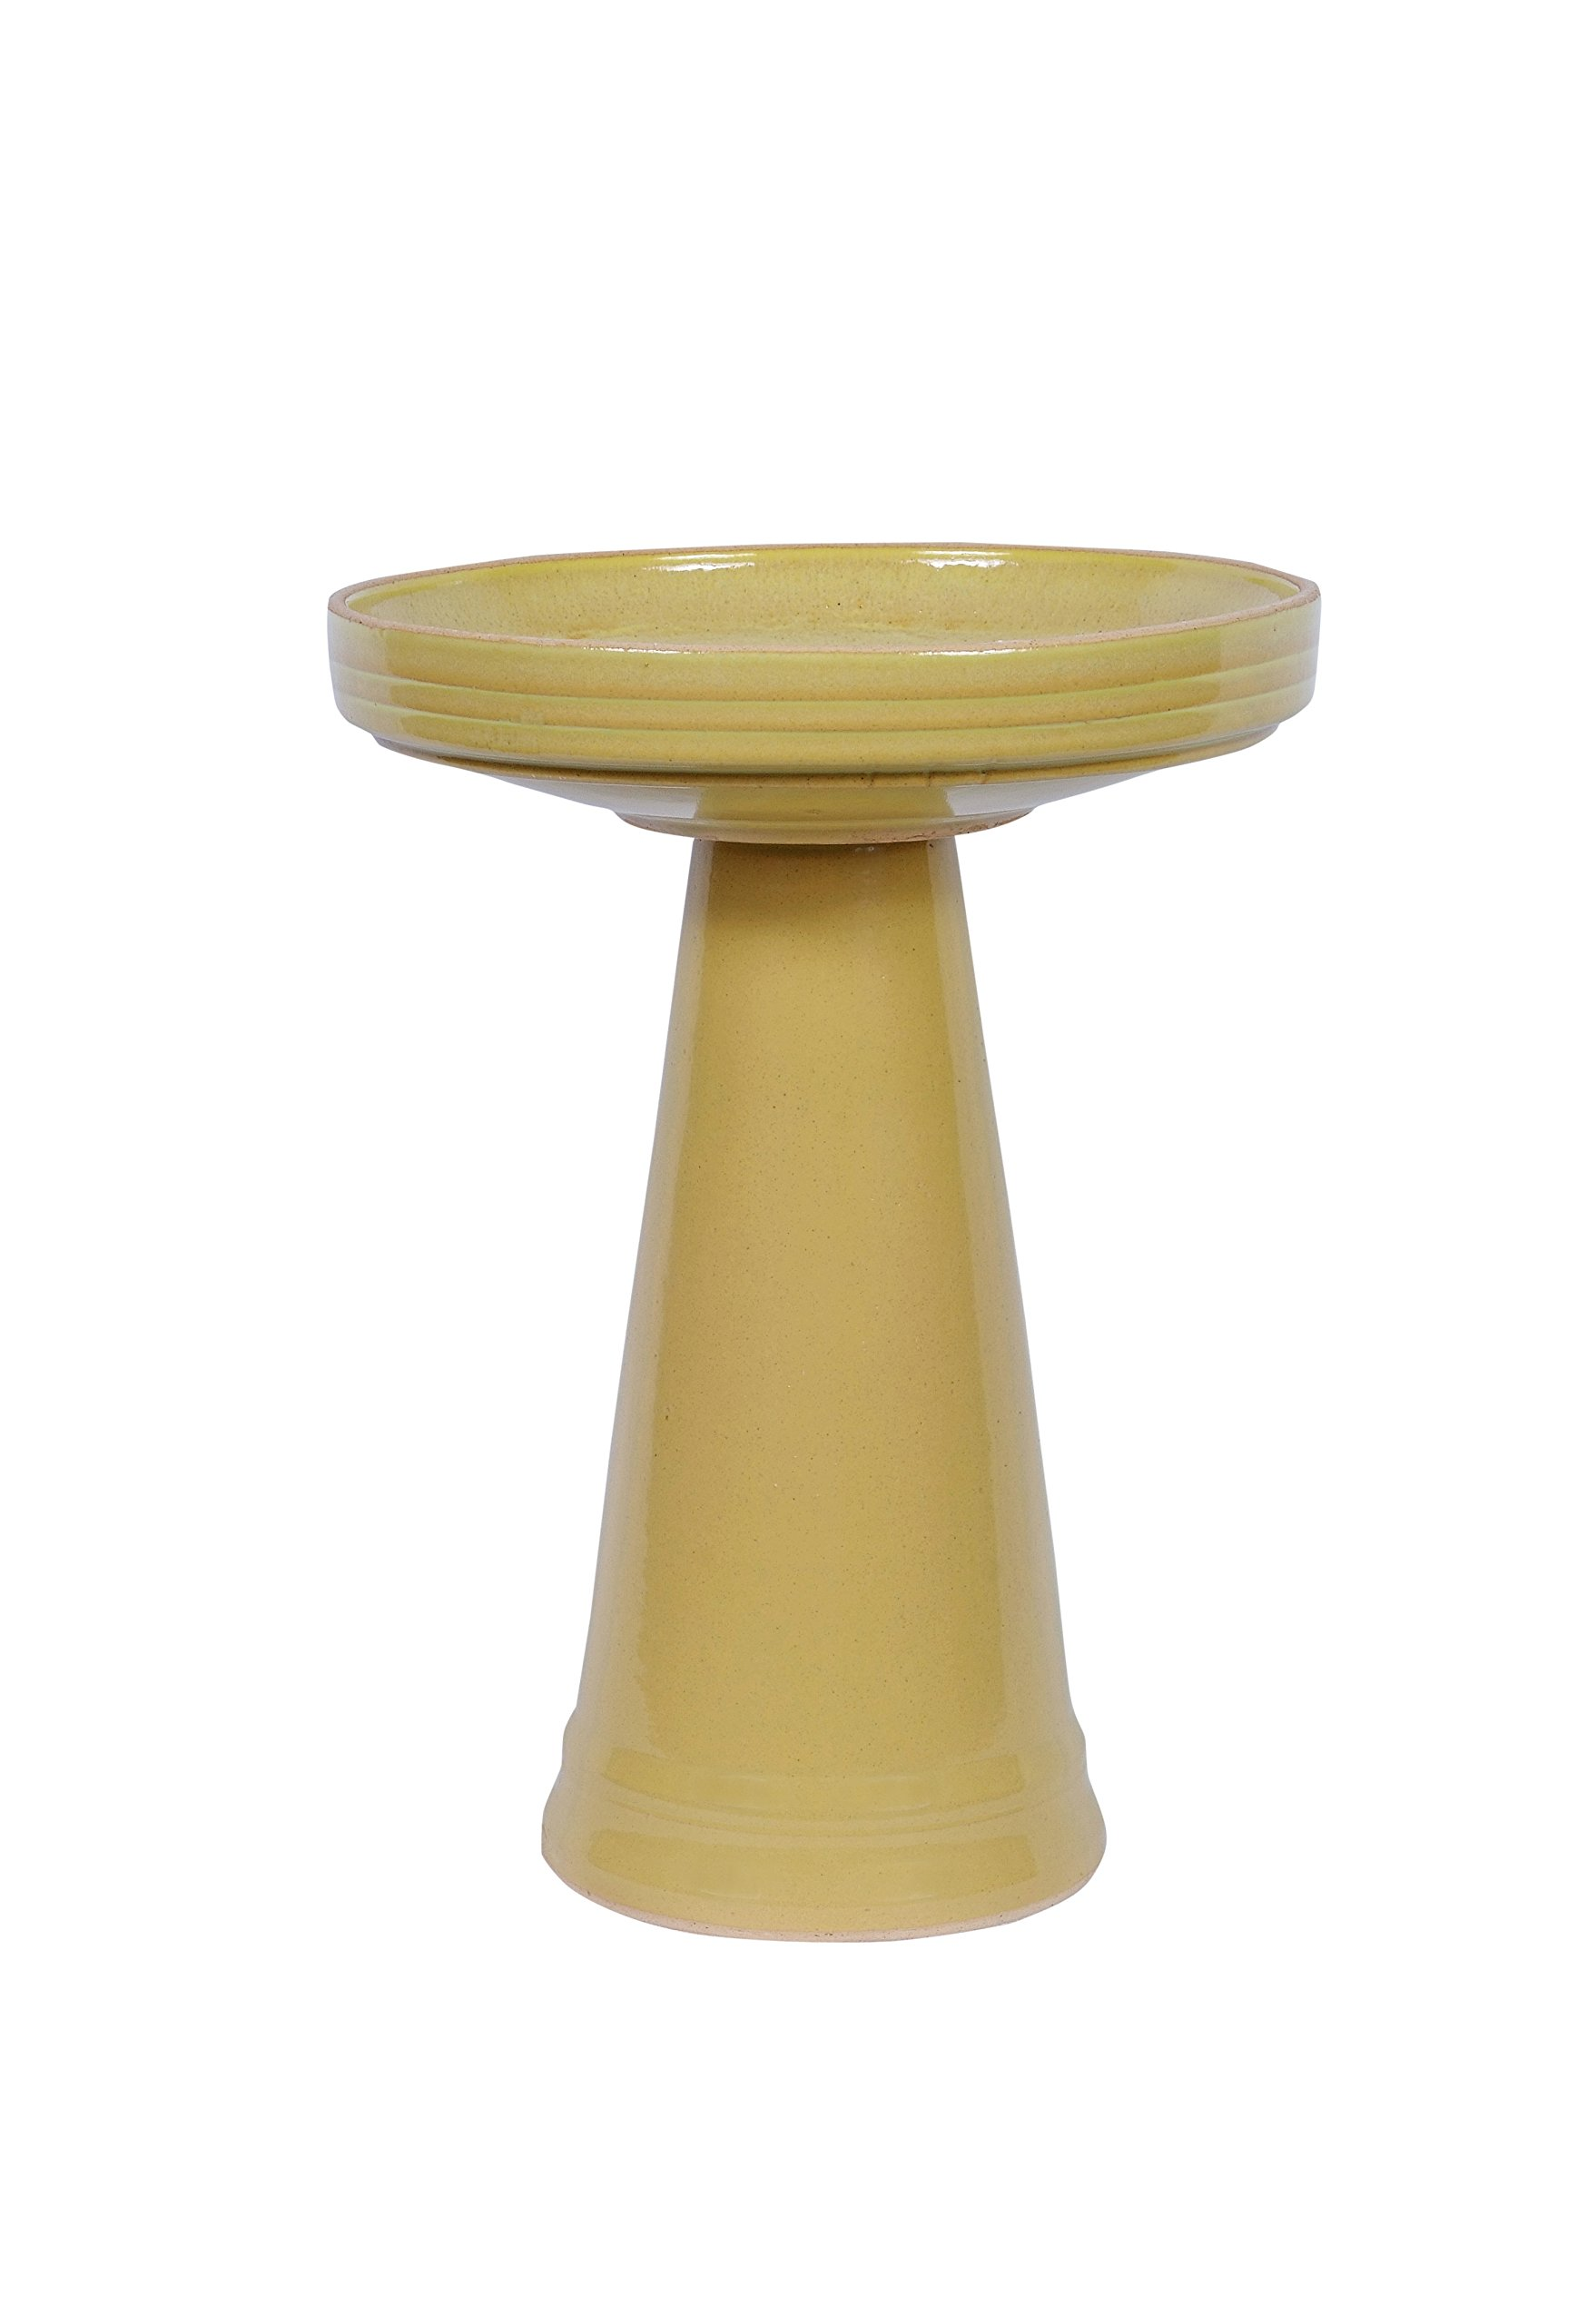 Bird's Choice BCSE-SL Simple Elegance Ylw Bird Bath, Medium, Sunlight by Birds Choice